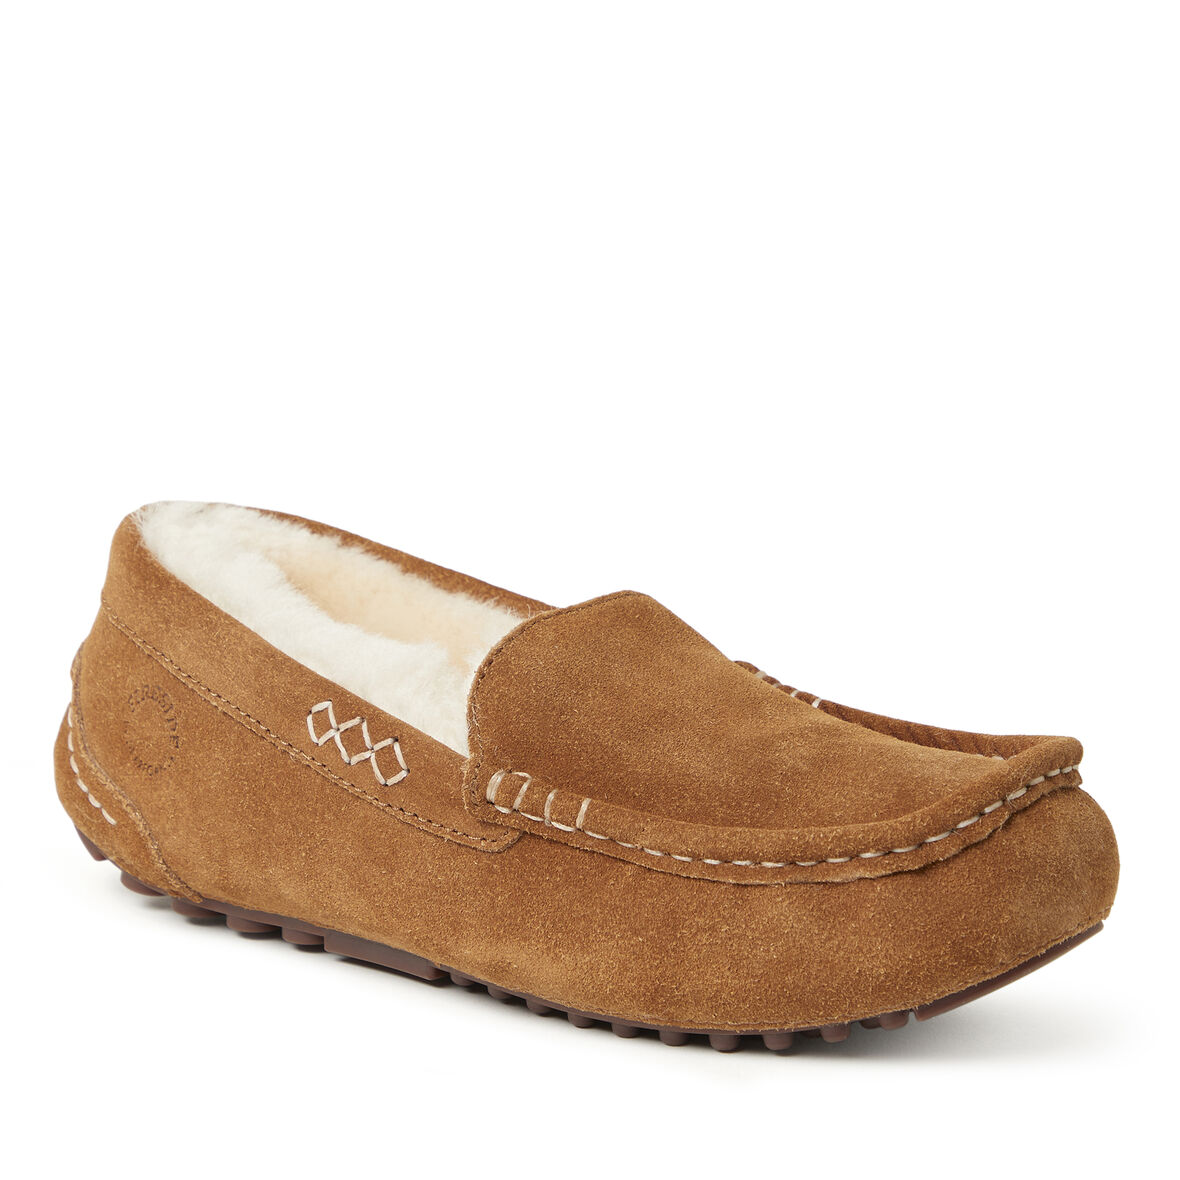 Details about  / Dearfoams  Shearling Moccasin Style  Slippers New With Tags Free Shipping